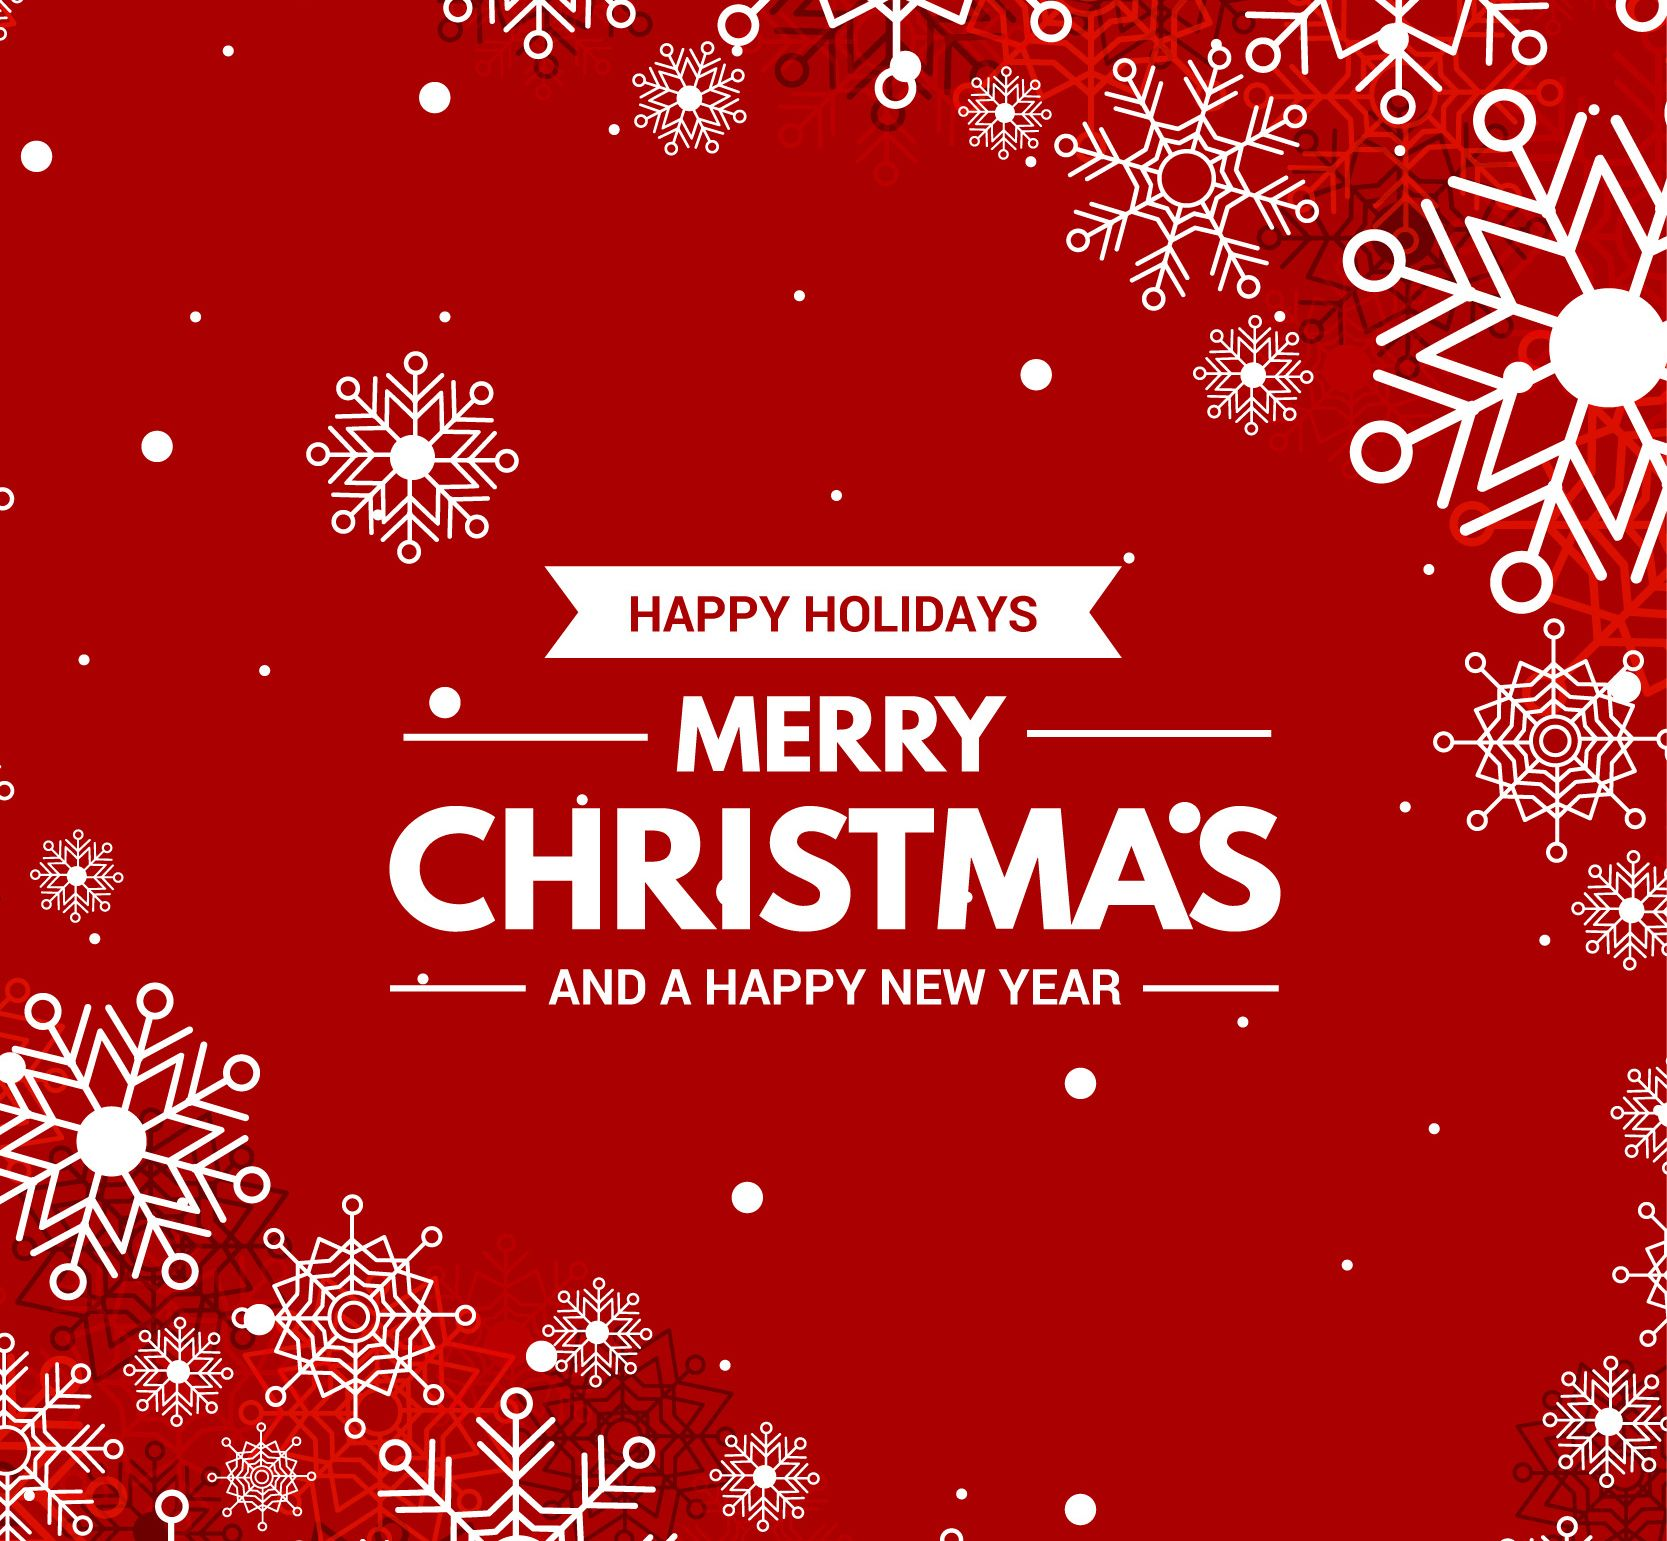 Free Christmas Images Free Merry Christmas Images Free Christmas